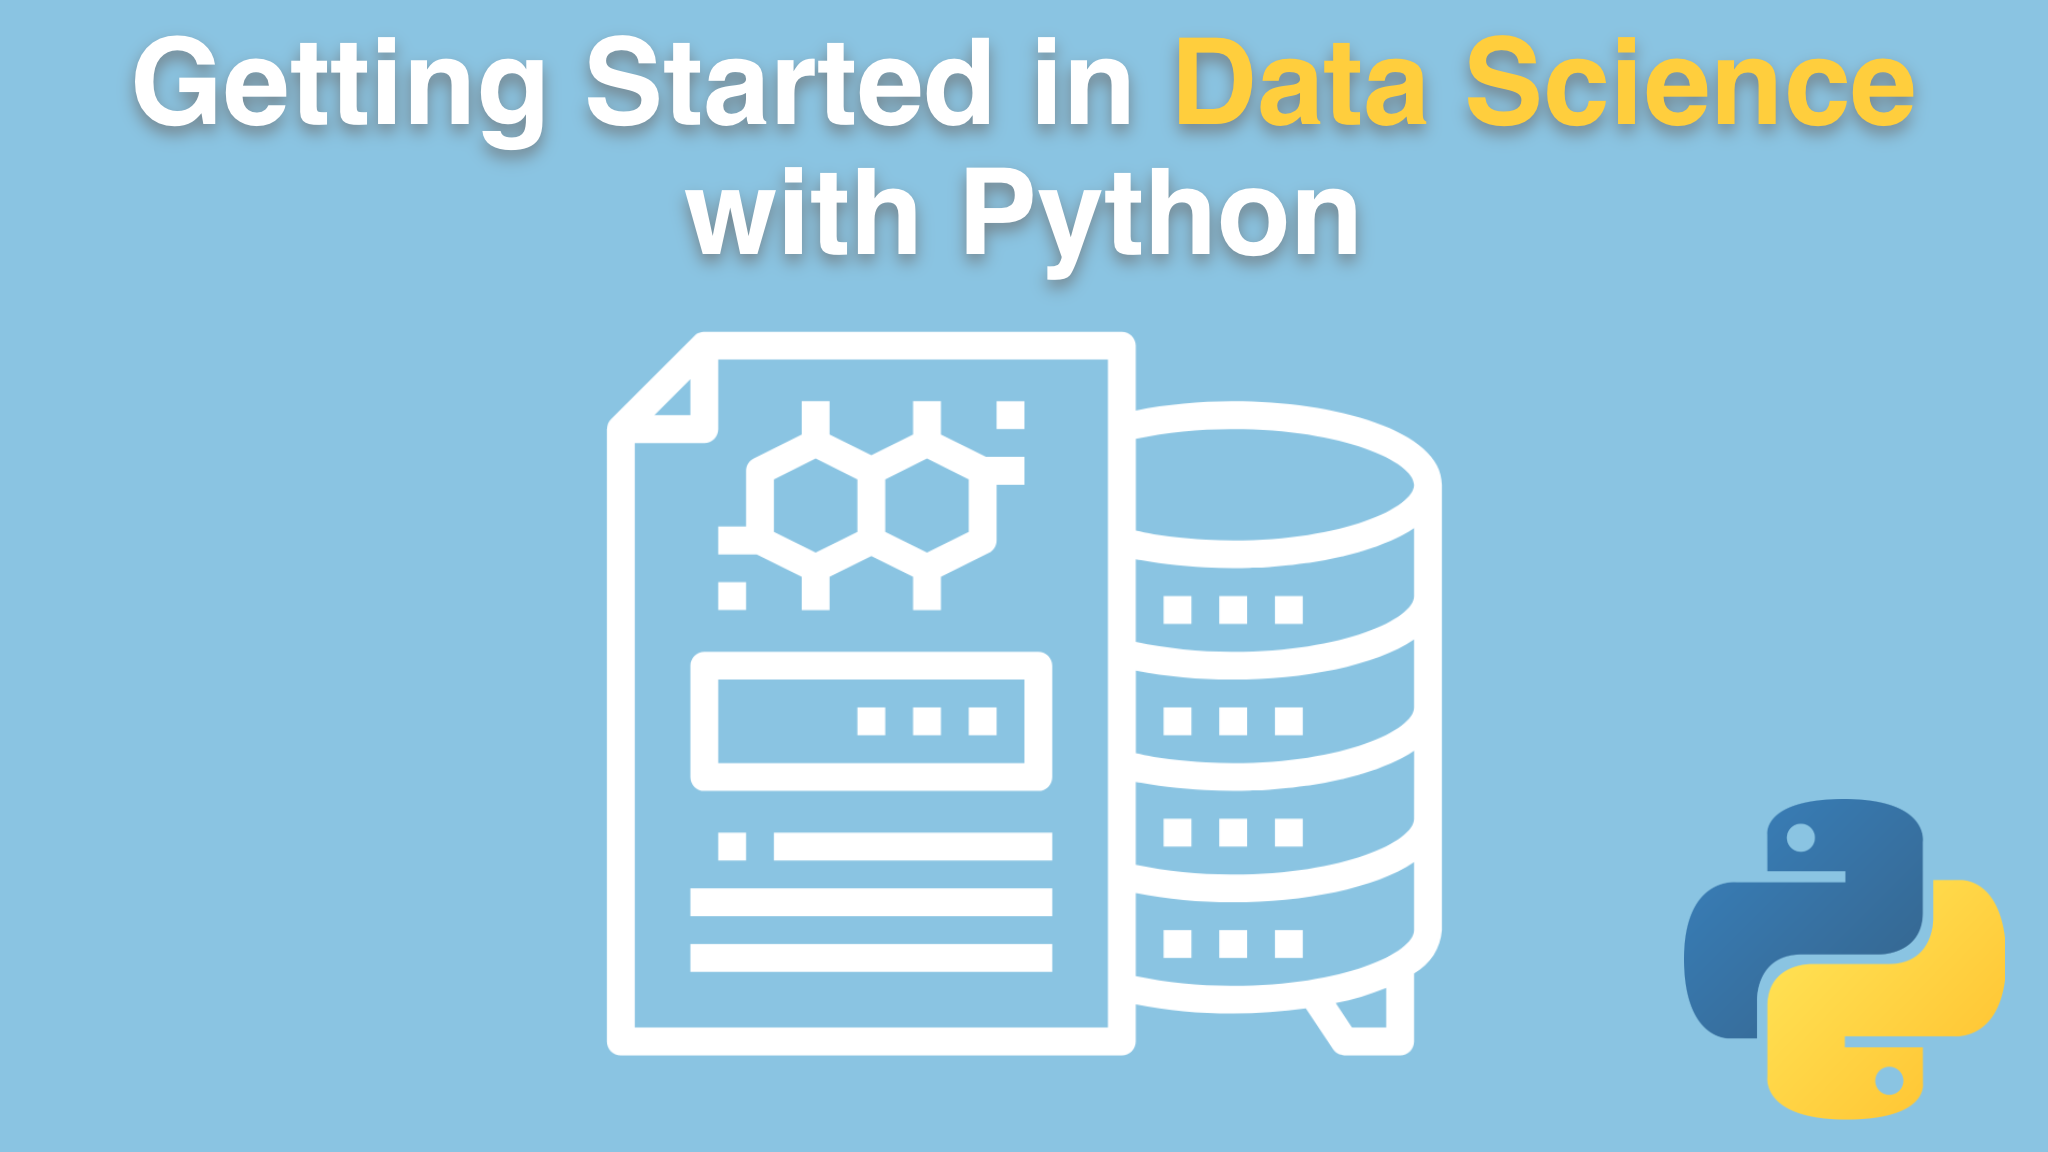 Course: Getting Started in Data Science